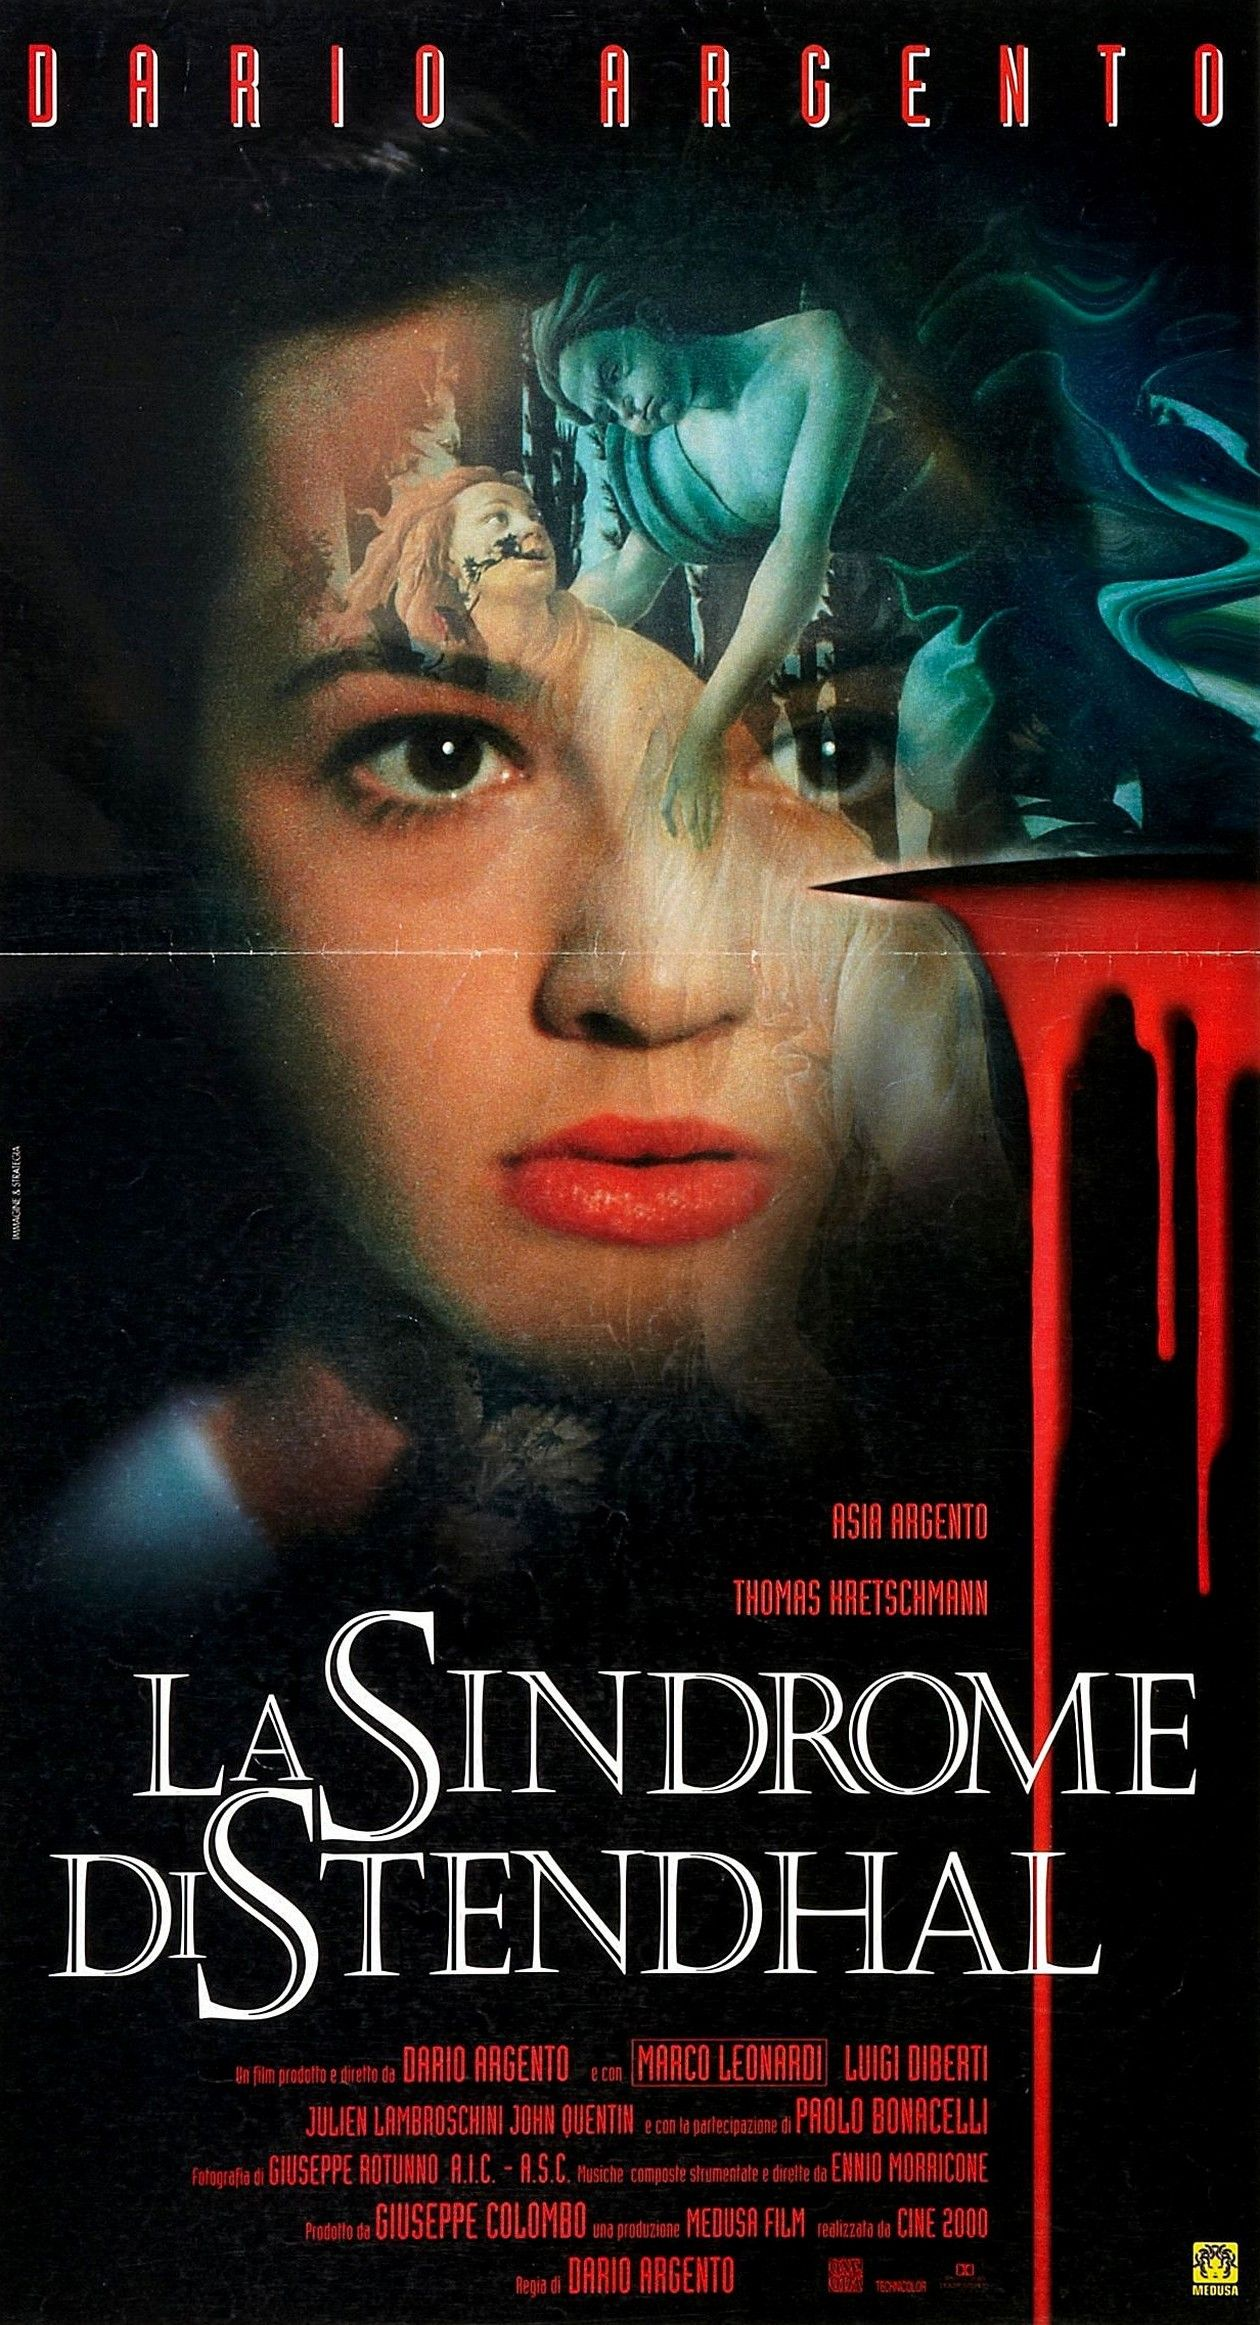 Asia Argento actress | La sindrome di Stendhal / Le syndrome de Stendhal / DARIO ARGENTO 1996 Movie Poster Affiche film